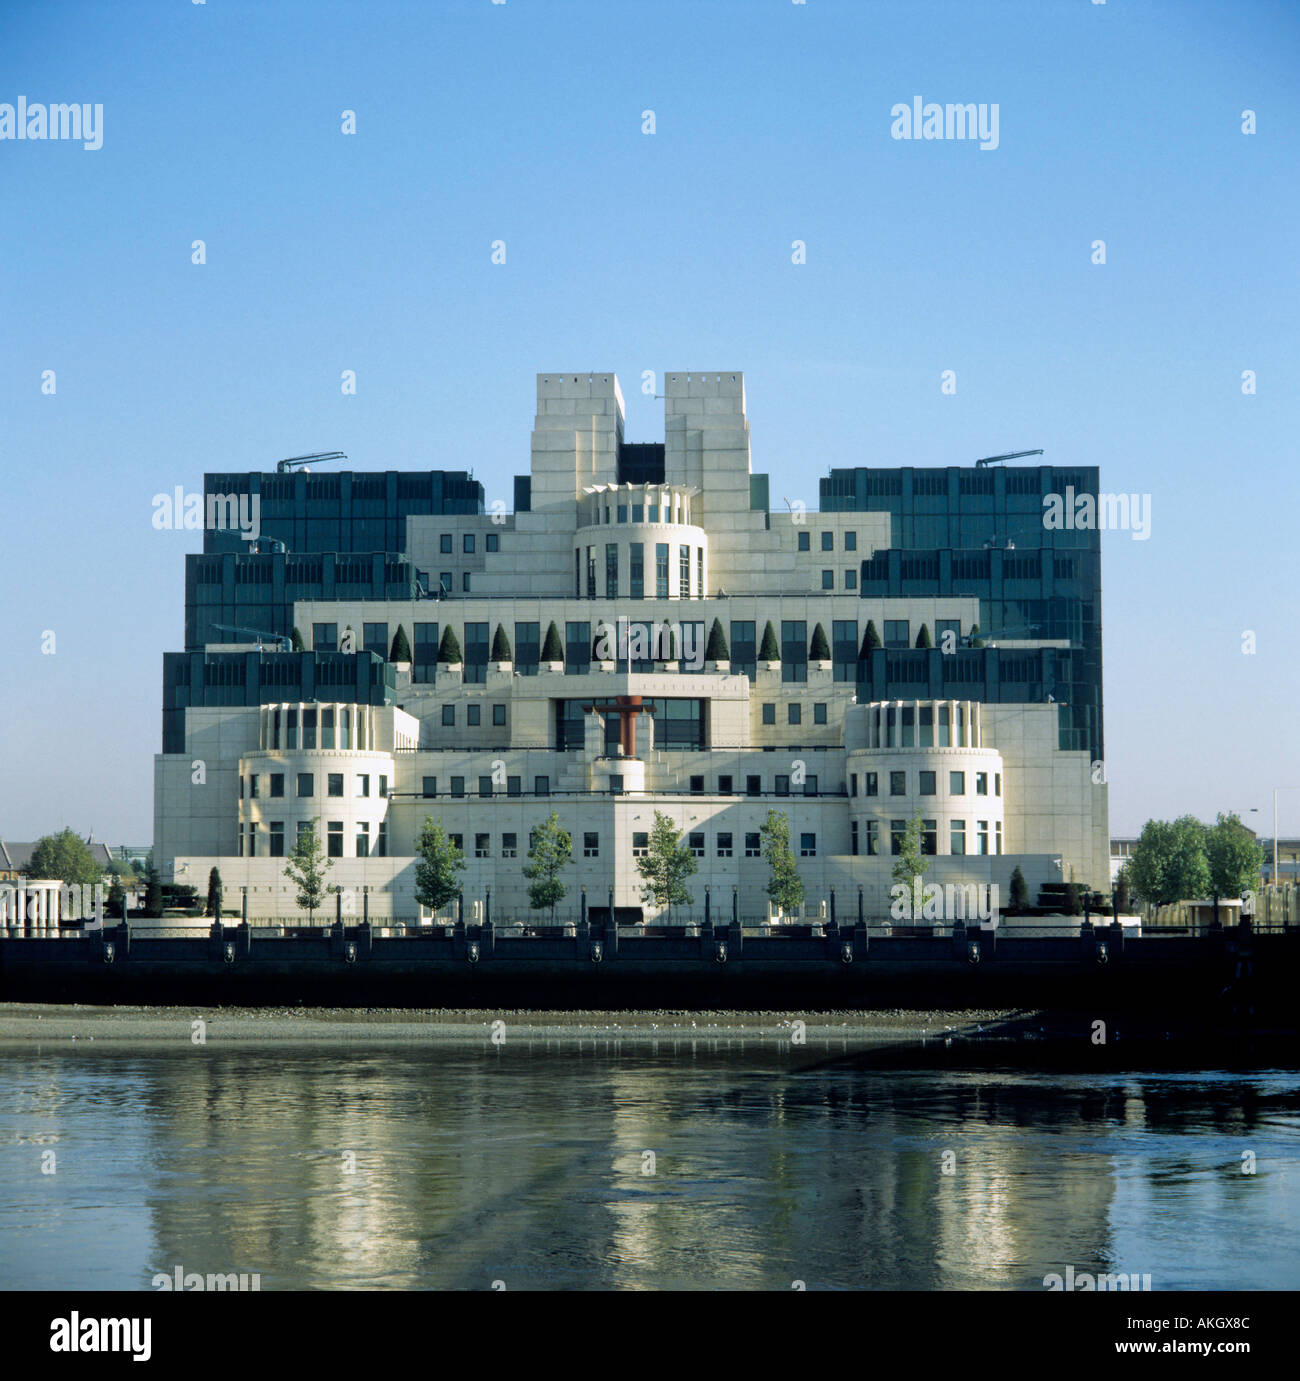 thames river and hq of foreign spy service mi6 city of london england great britain editorial use only - Stock Image